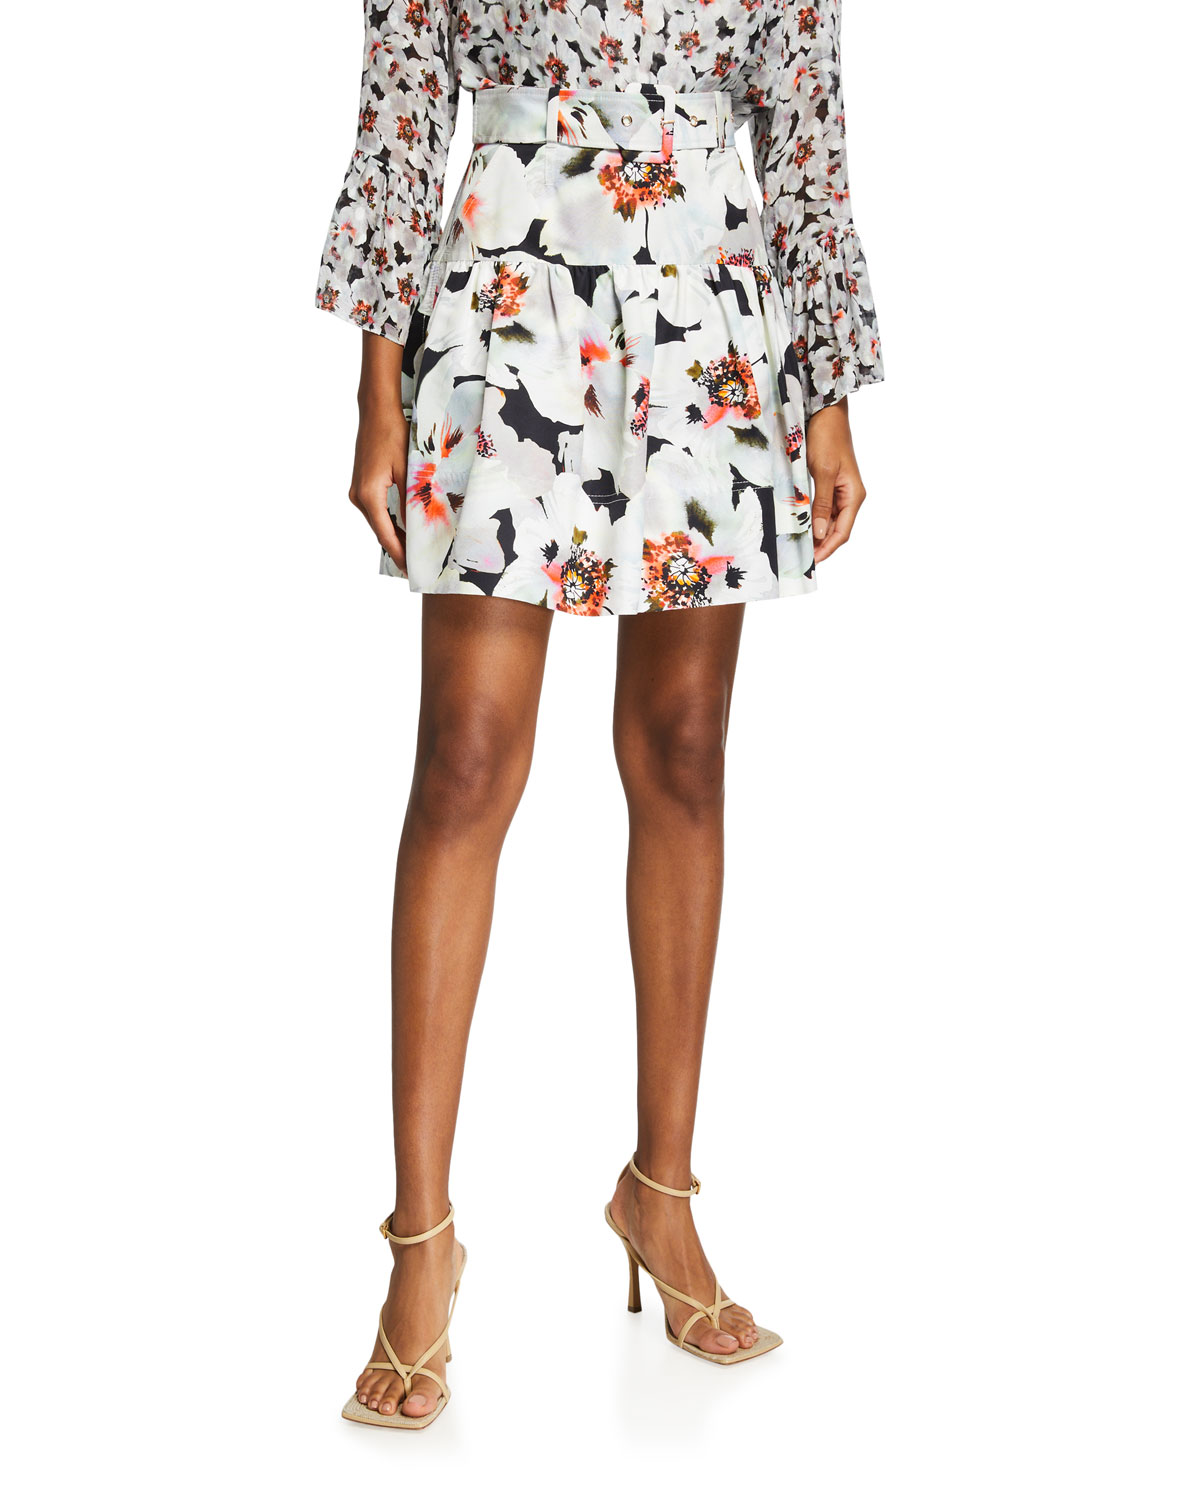 Tanya Taylor Silks CARRIE BELTED FLORAL MINI SKIRT